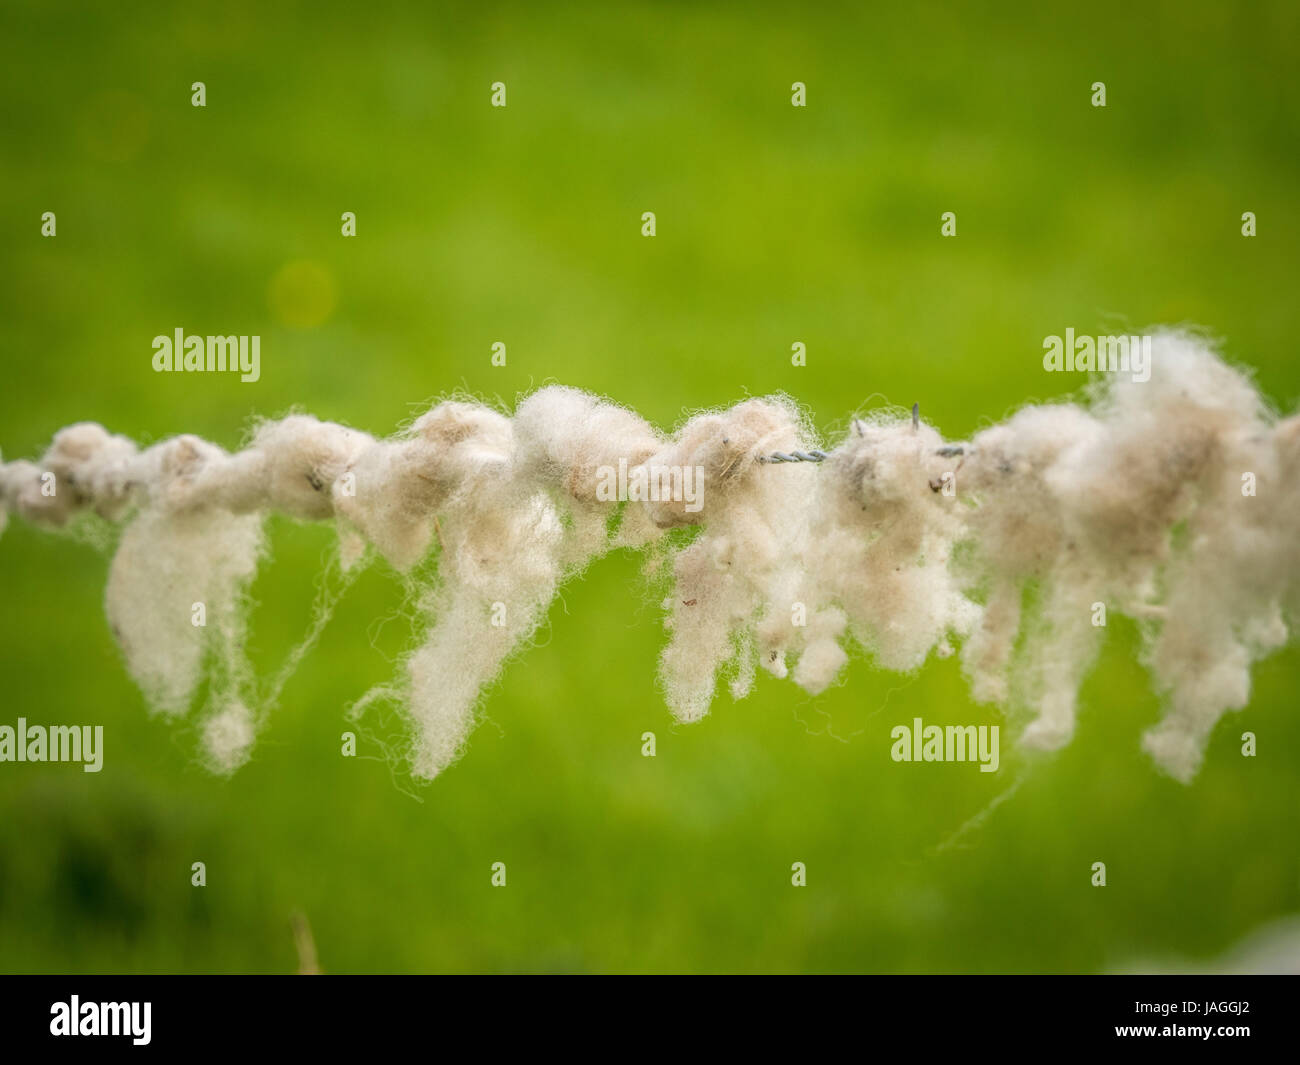 Sheep wool caught on barbed wire fence - Stock Image